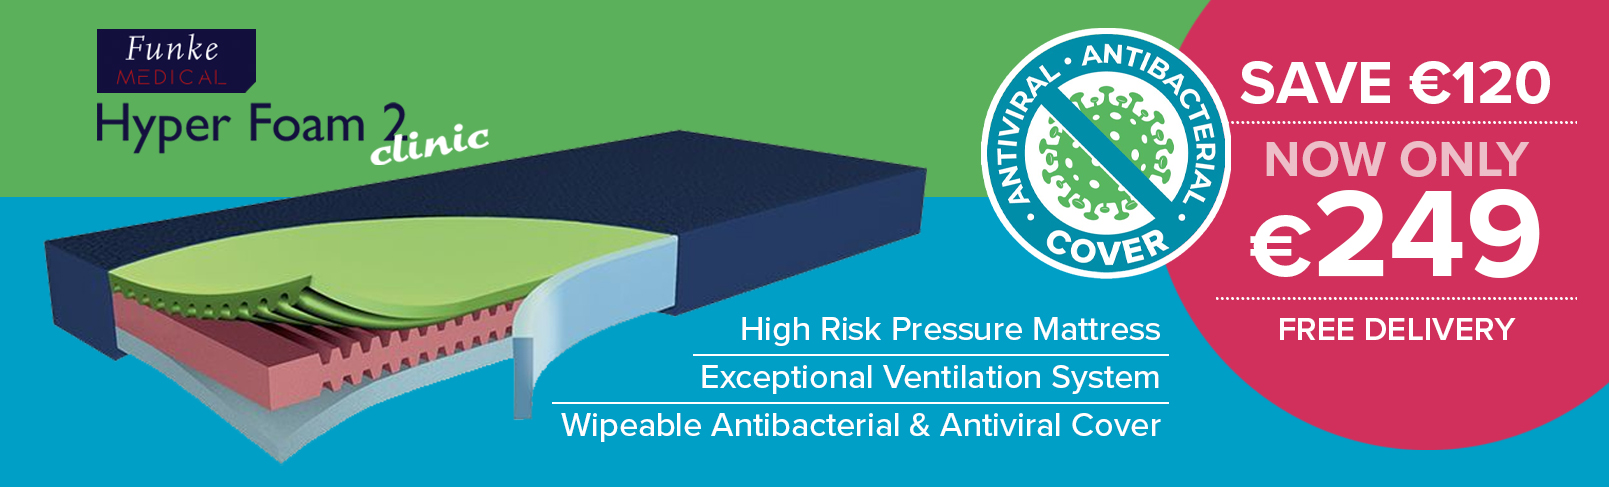 Antiviral Antibacterial Mattress Ireland